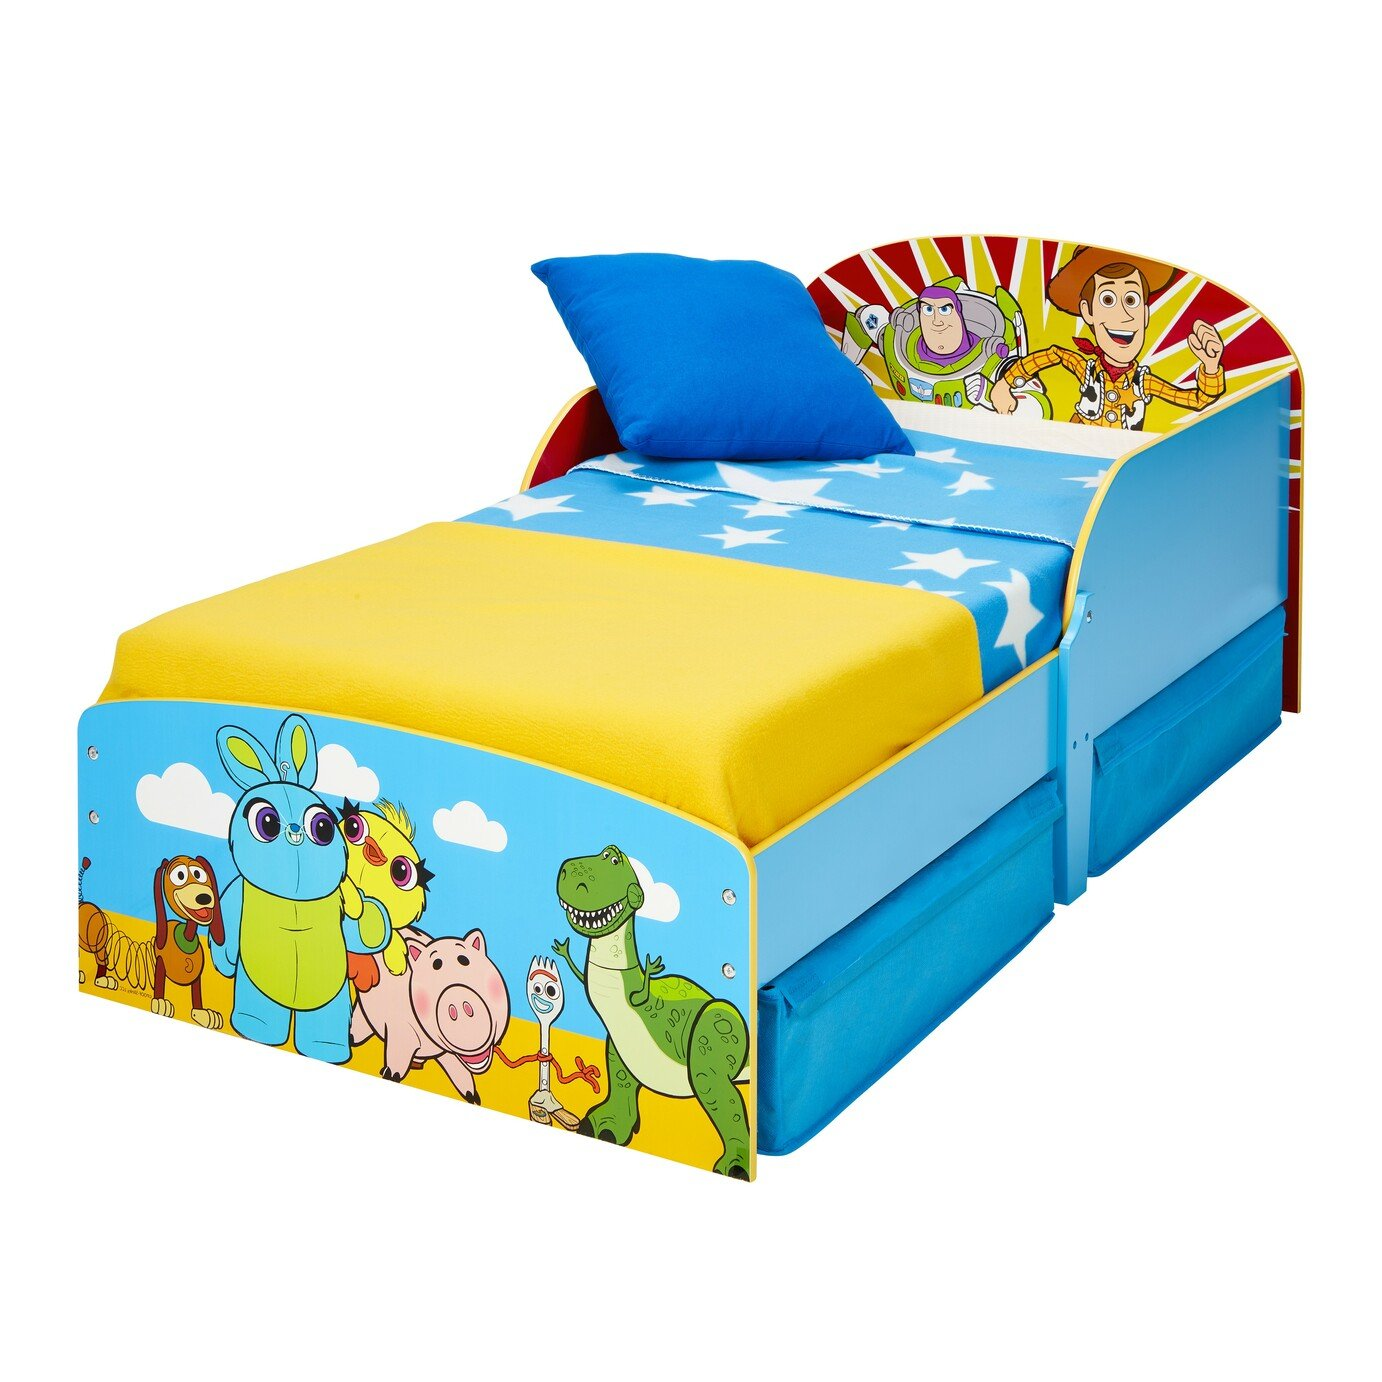 Disney Toy Story Toddler Bed with Drawers